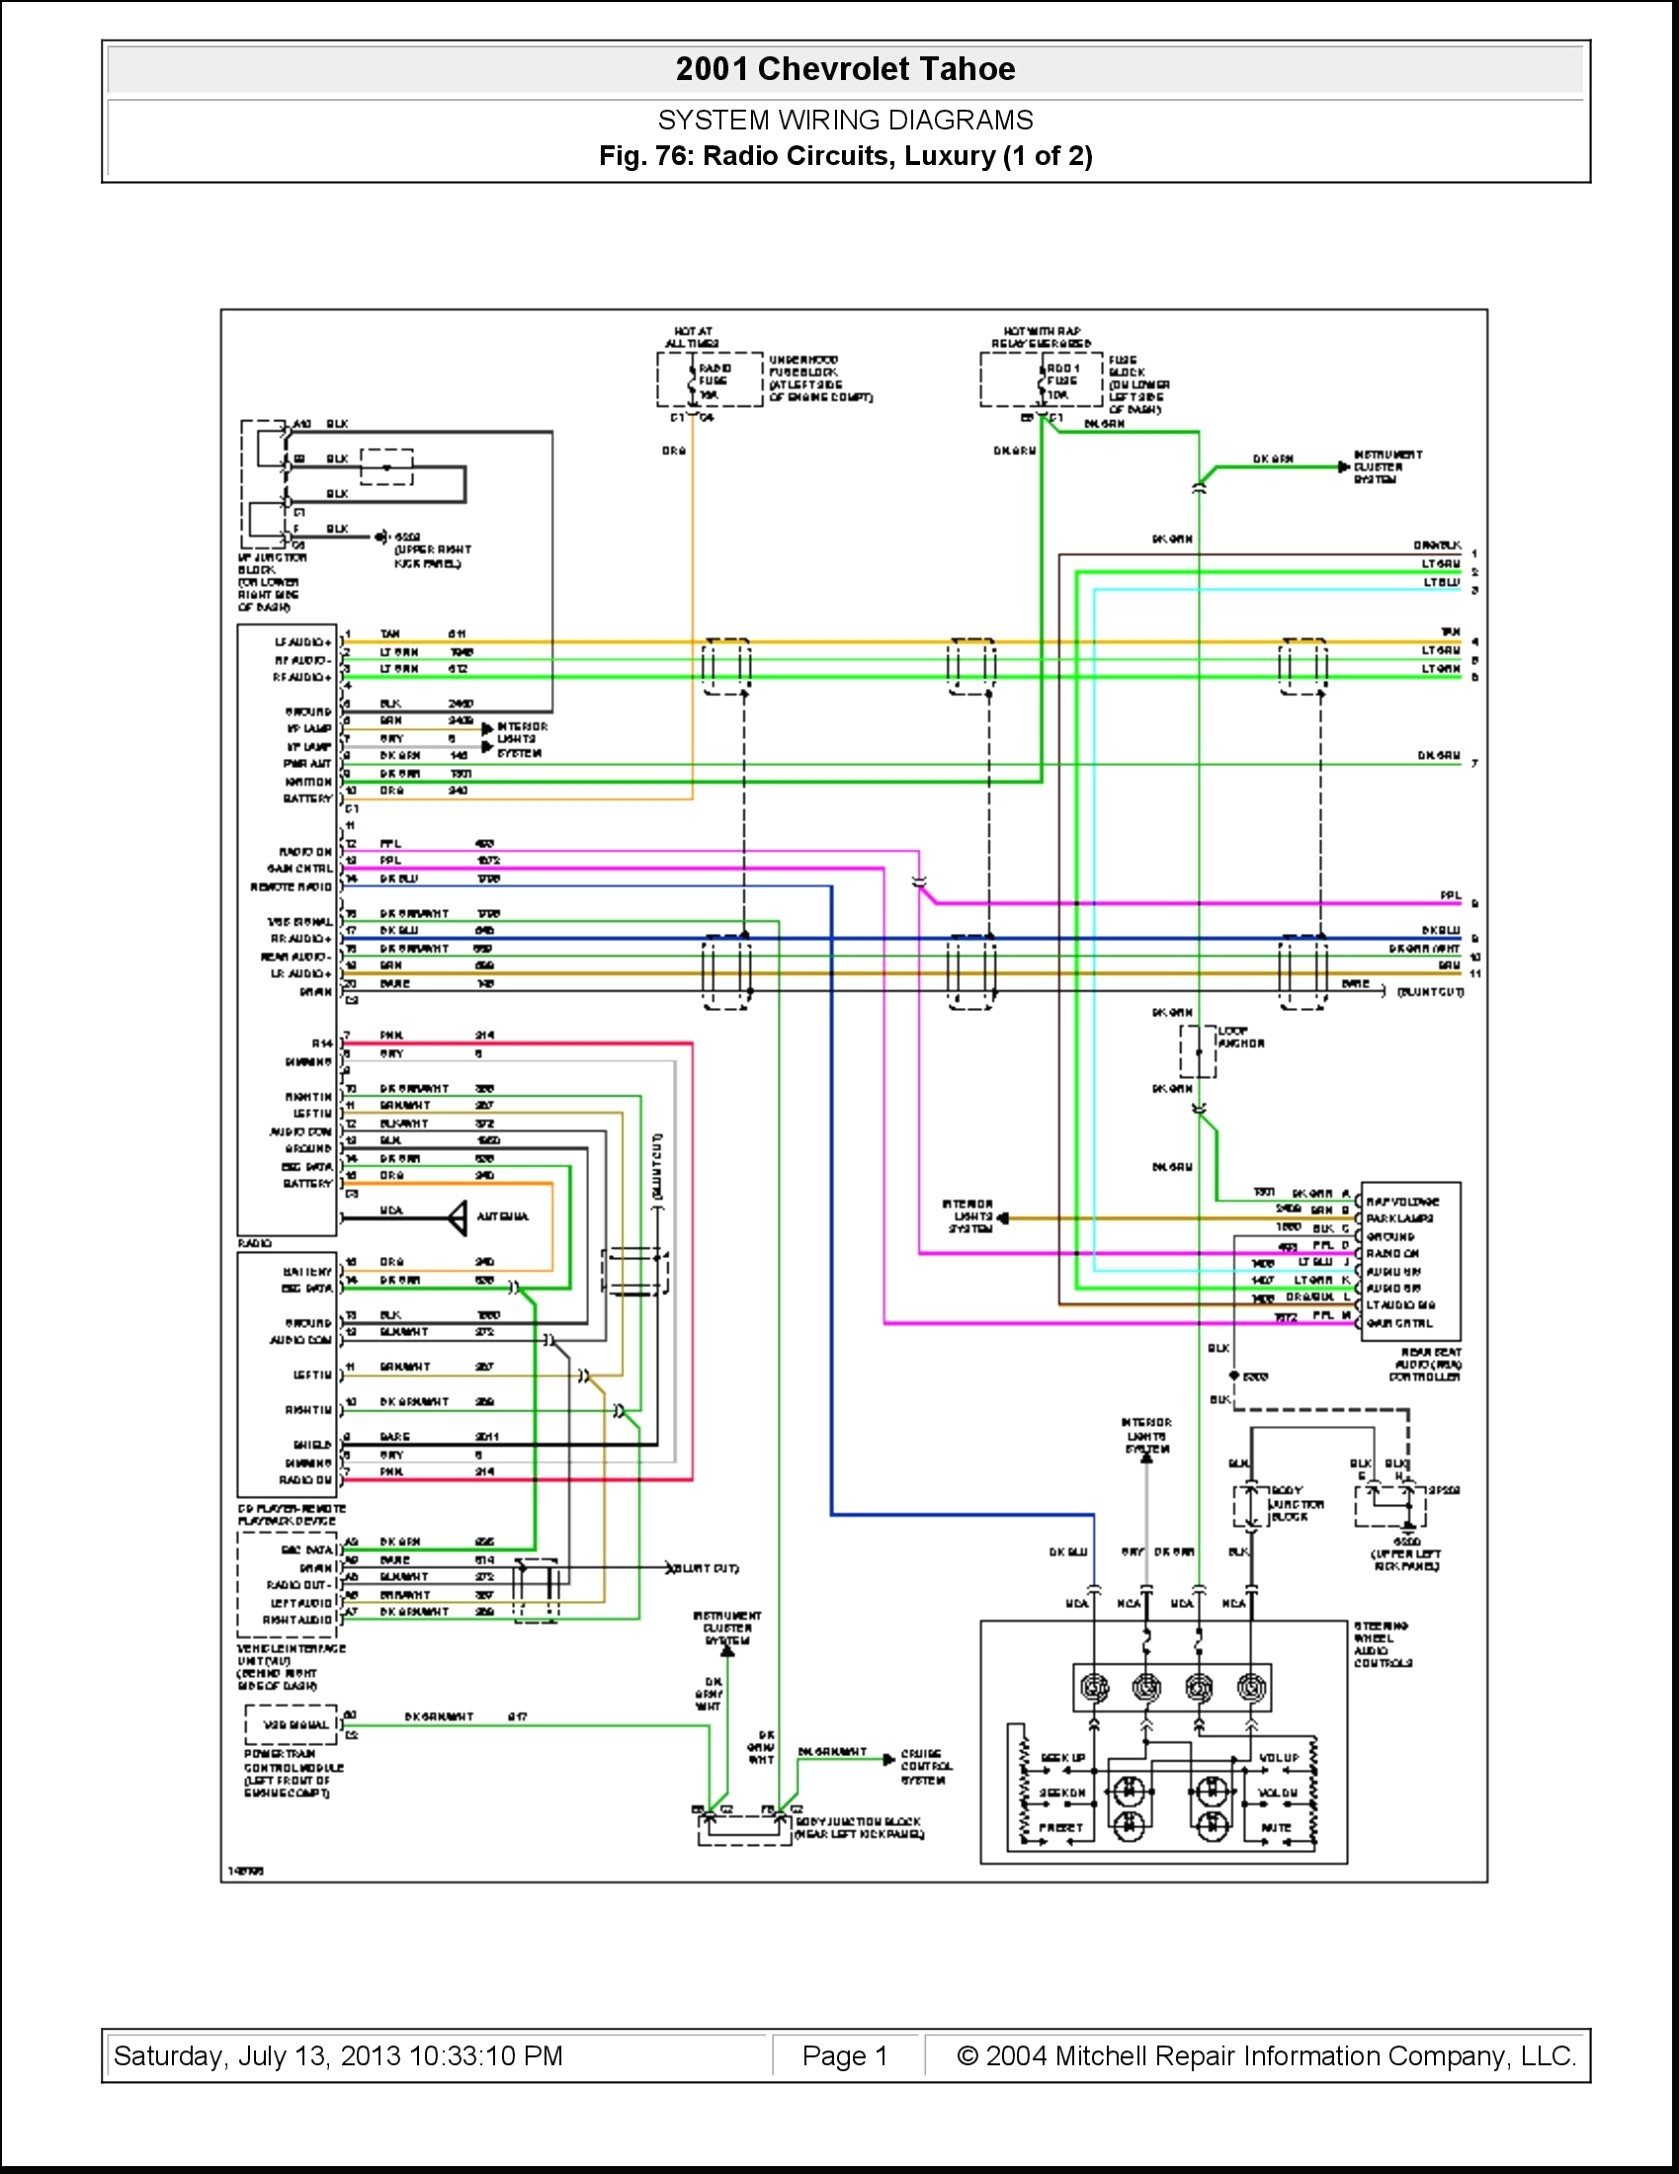 2005 Chevy Equinox Engine Diagram 2006 Chevy Wiring Diagram Wiring Diagram toolbox Of 2005 Chevy Equinox Engine Diagram